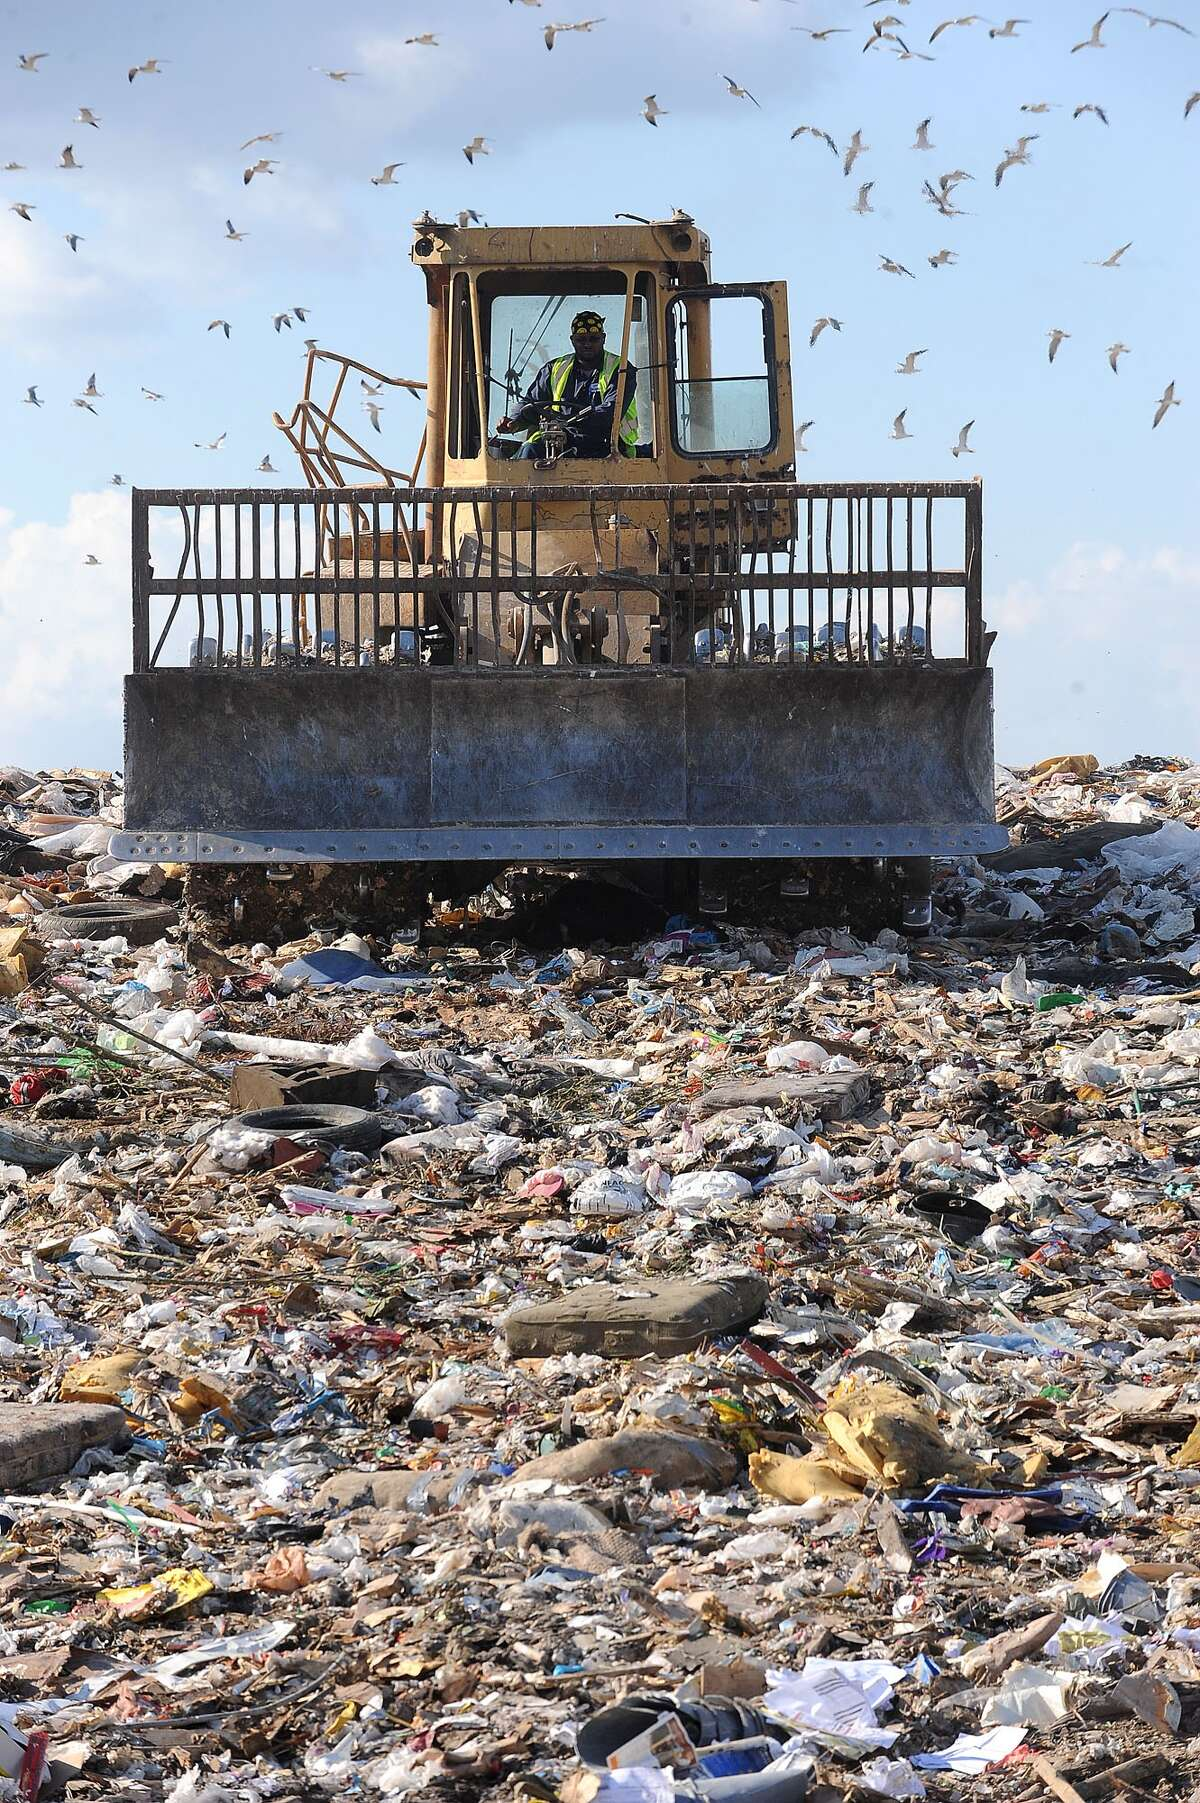 More trash is headed to Beaumont's landfill, pictured, due to the cancellation of curbside recycling services in Beaumont. How much do you know about recycling in Texas? Click forward to take a quiz and find out.